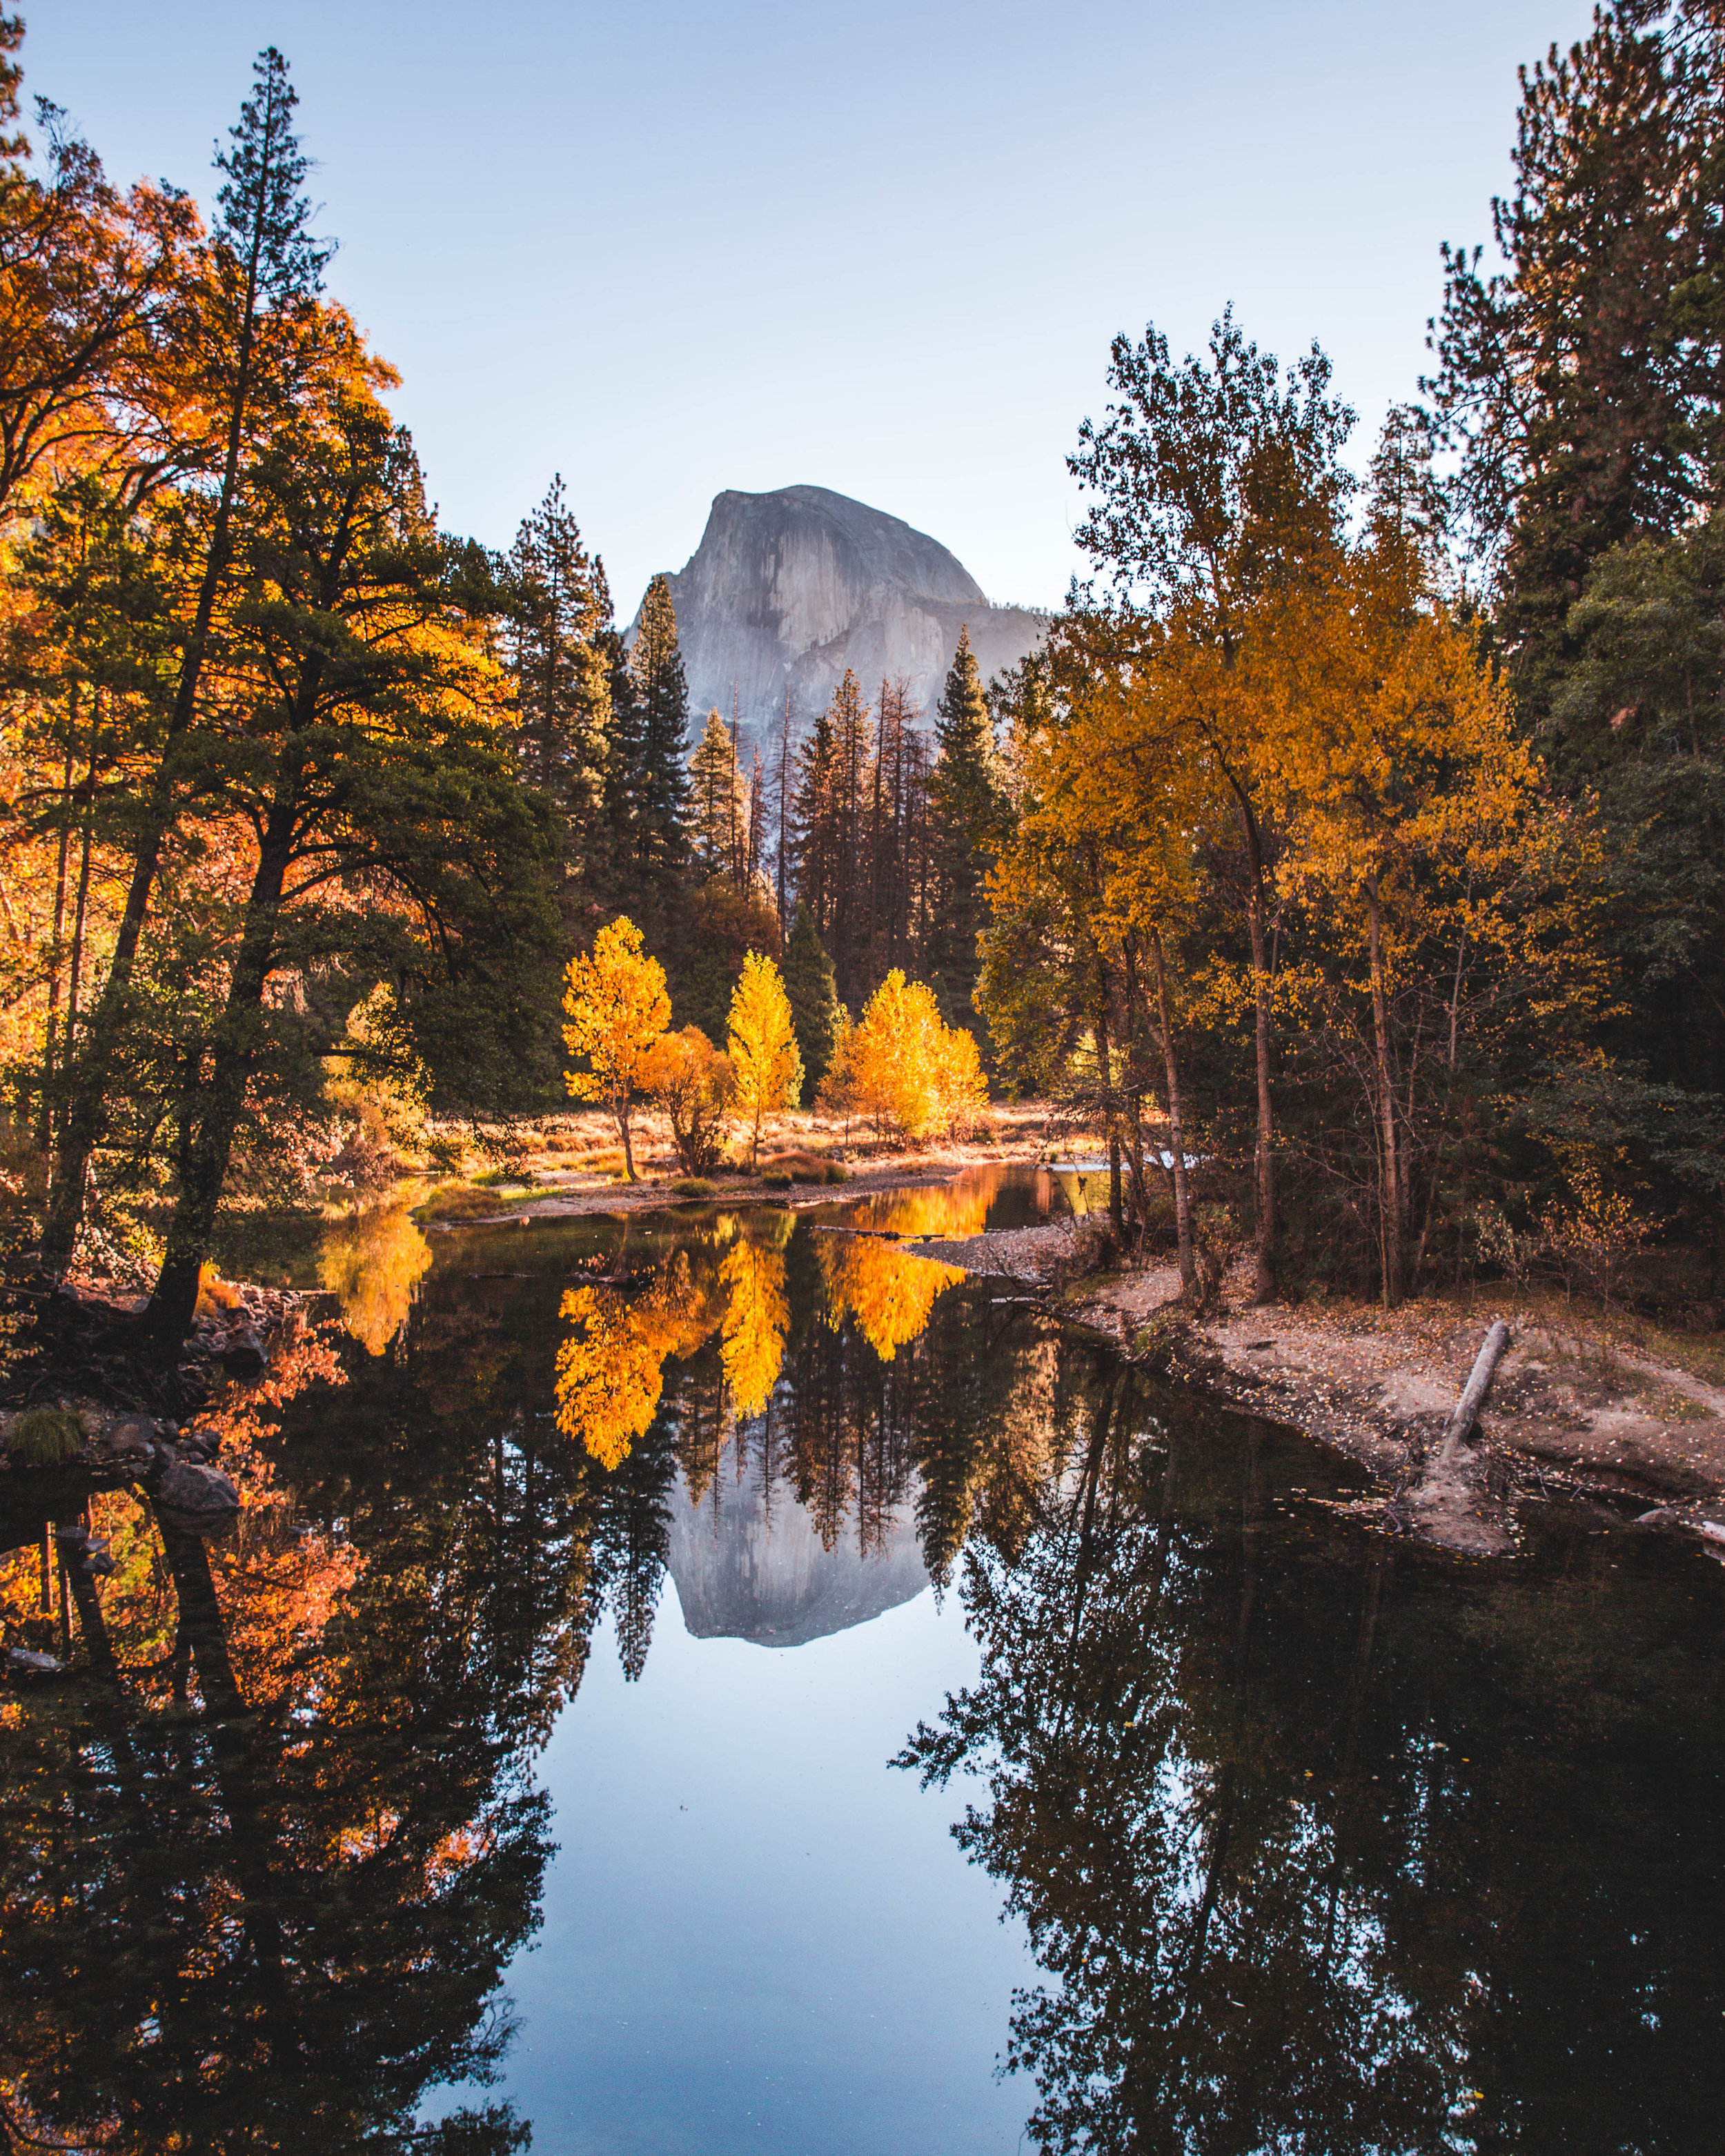 Half dome peaking behind some fall foliage at sunrise.